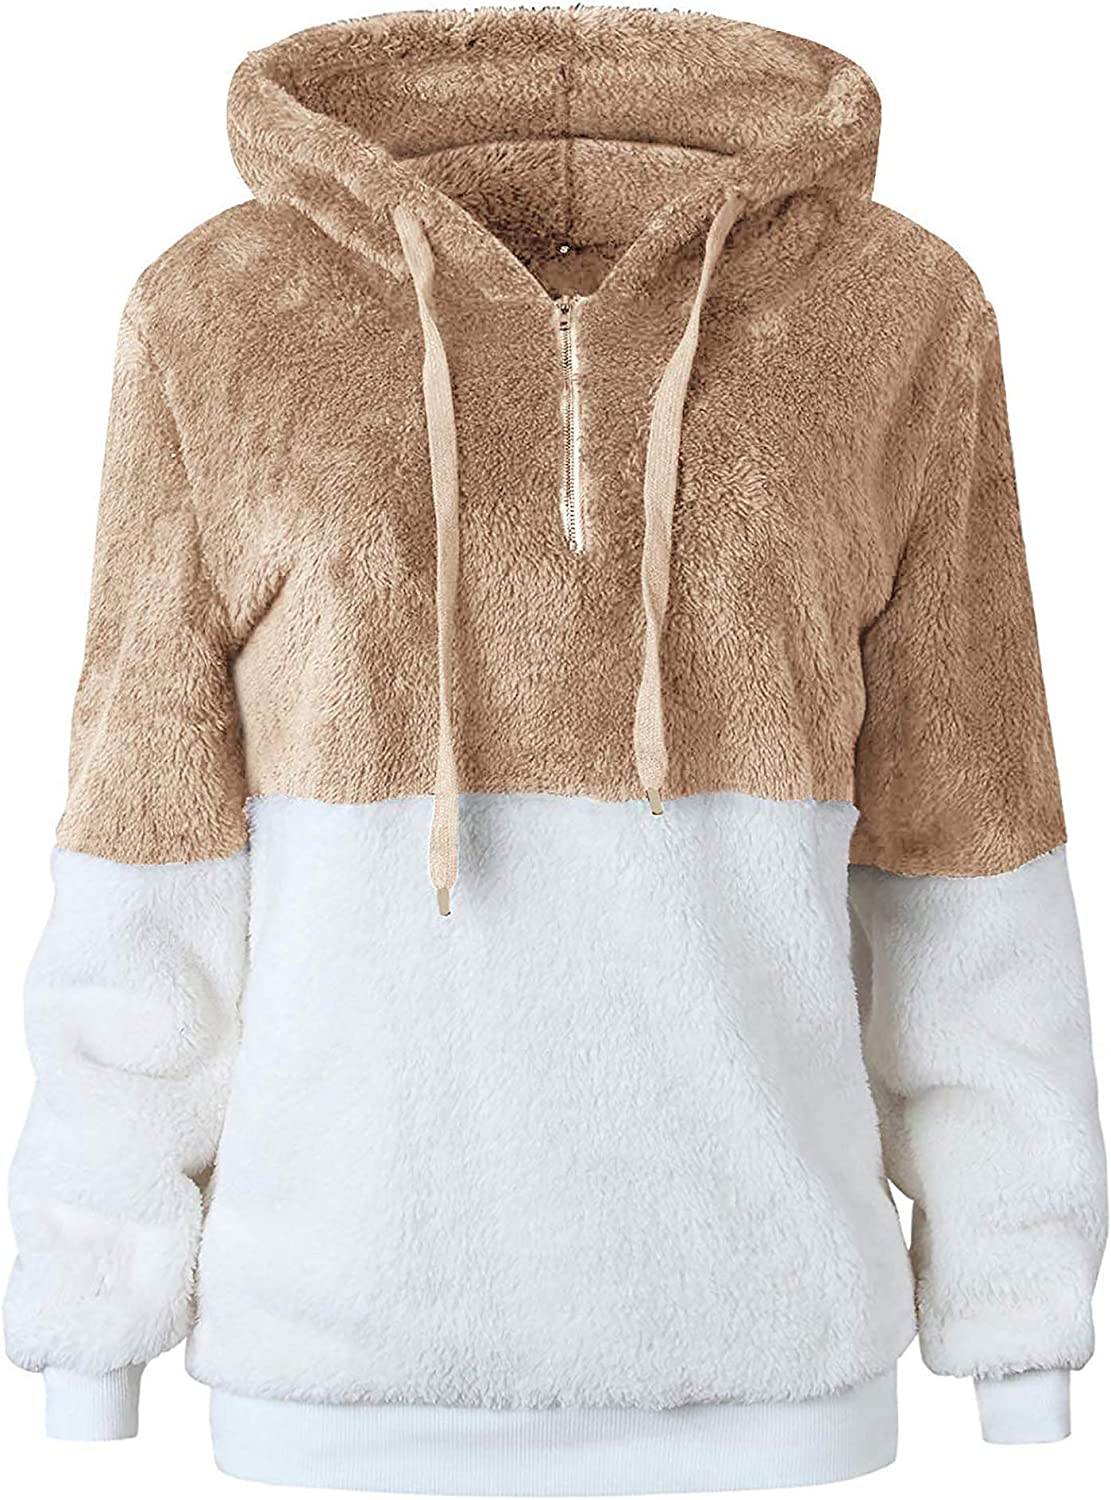 Oyamiki Womens Fuzzy Hoodies Casual Loose Pullover Hooded Sweatshirt Outwear with Pockets? Khaki